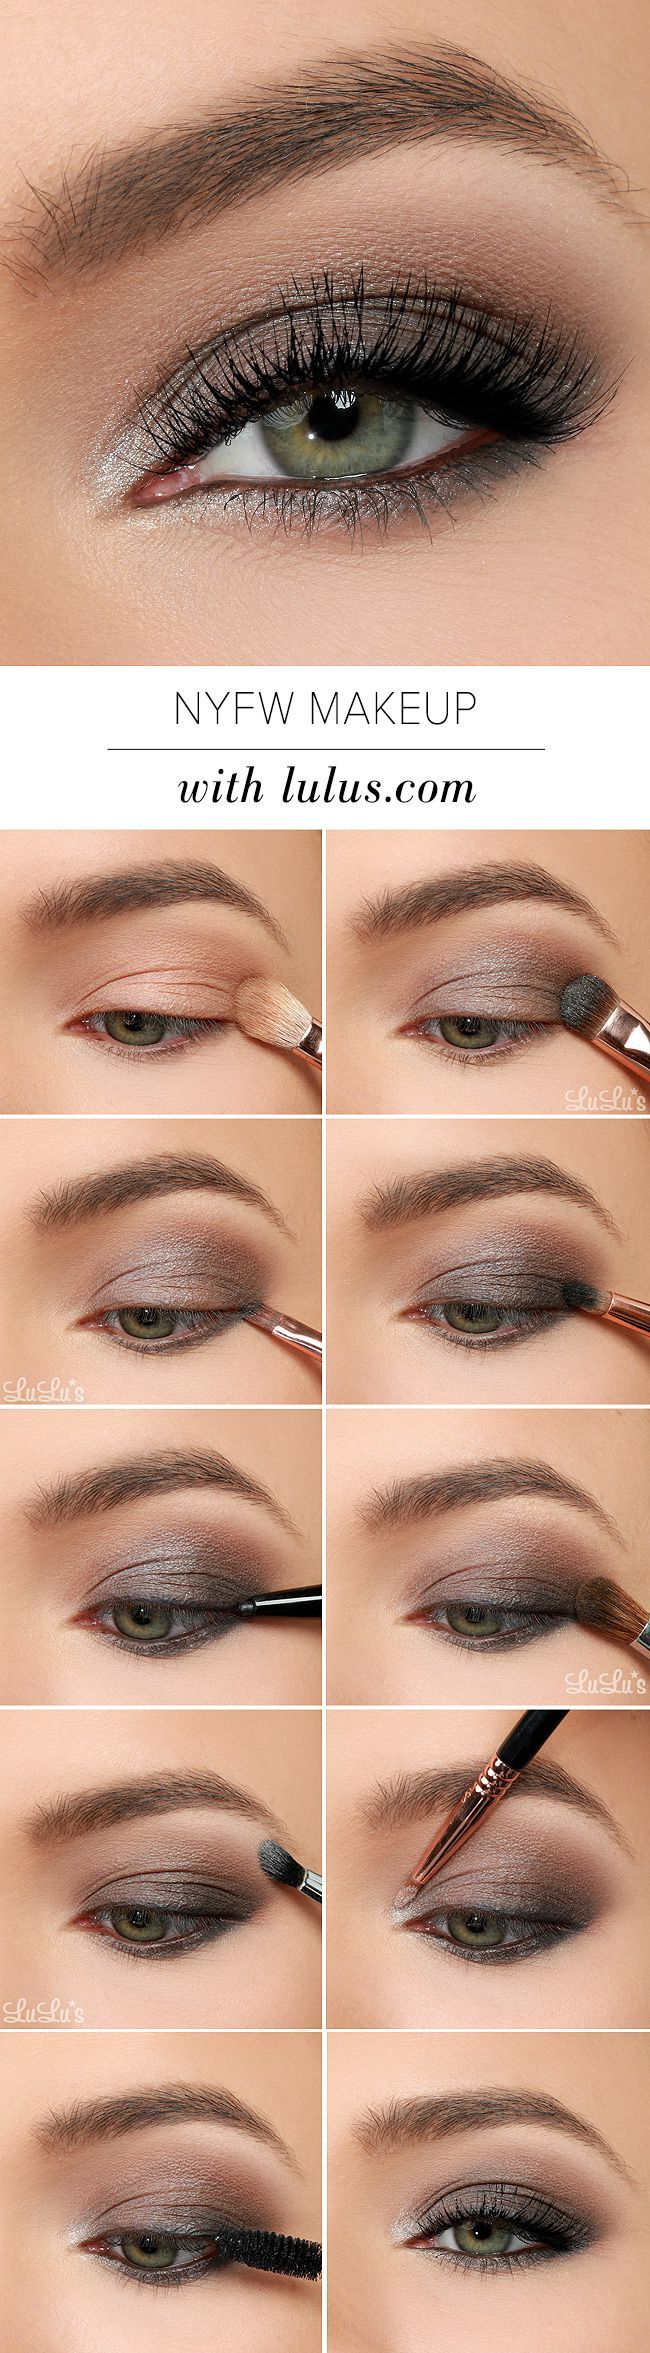 How to NYFW inspired Eye Make-up tutorial. Grayish & Brown Eye shadow for dull days                                                                                                                                                                                 Más